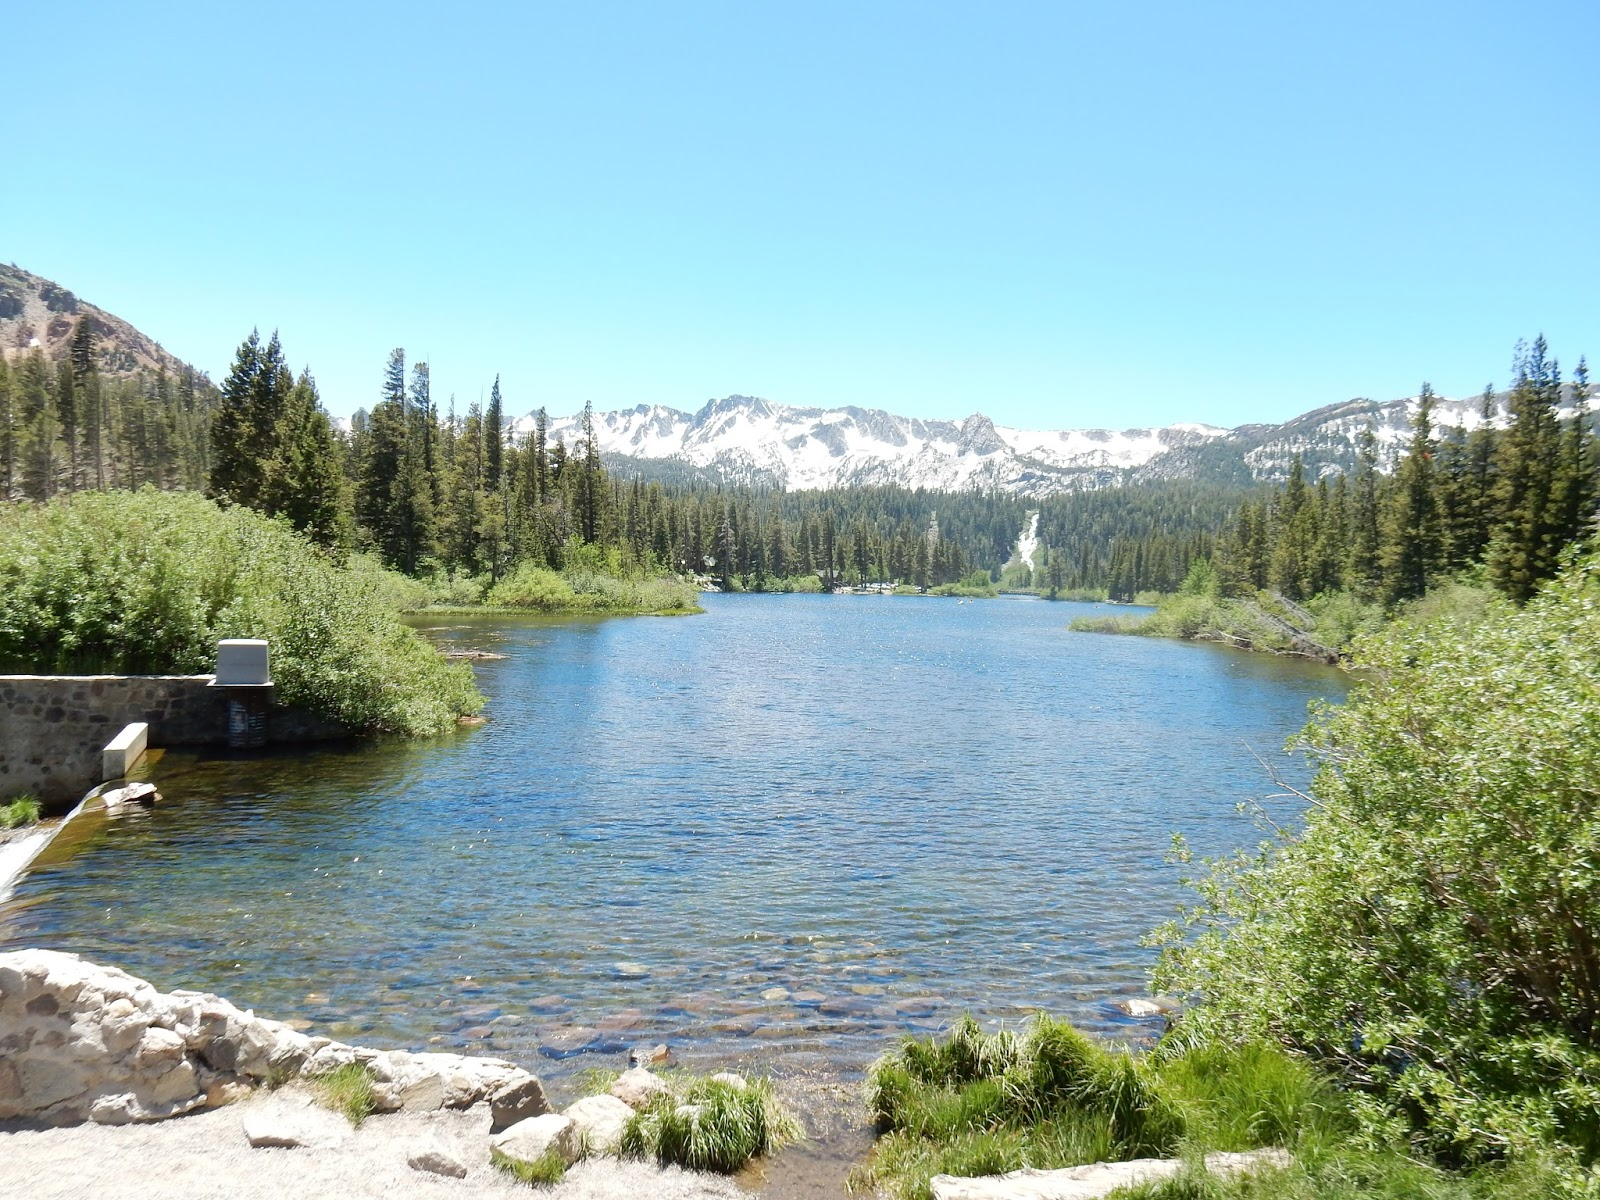 El encanto de Mammoth Lakes en California